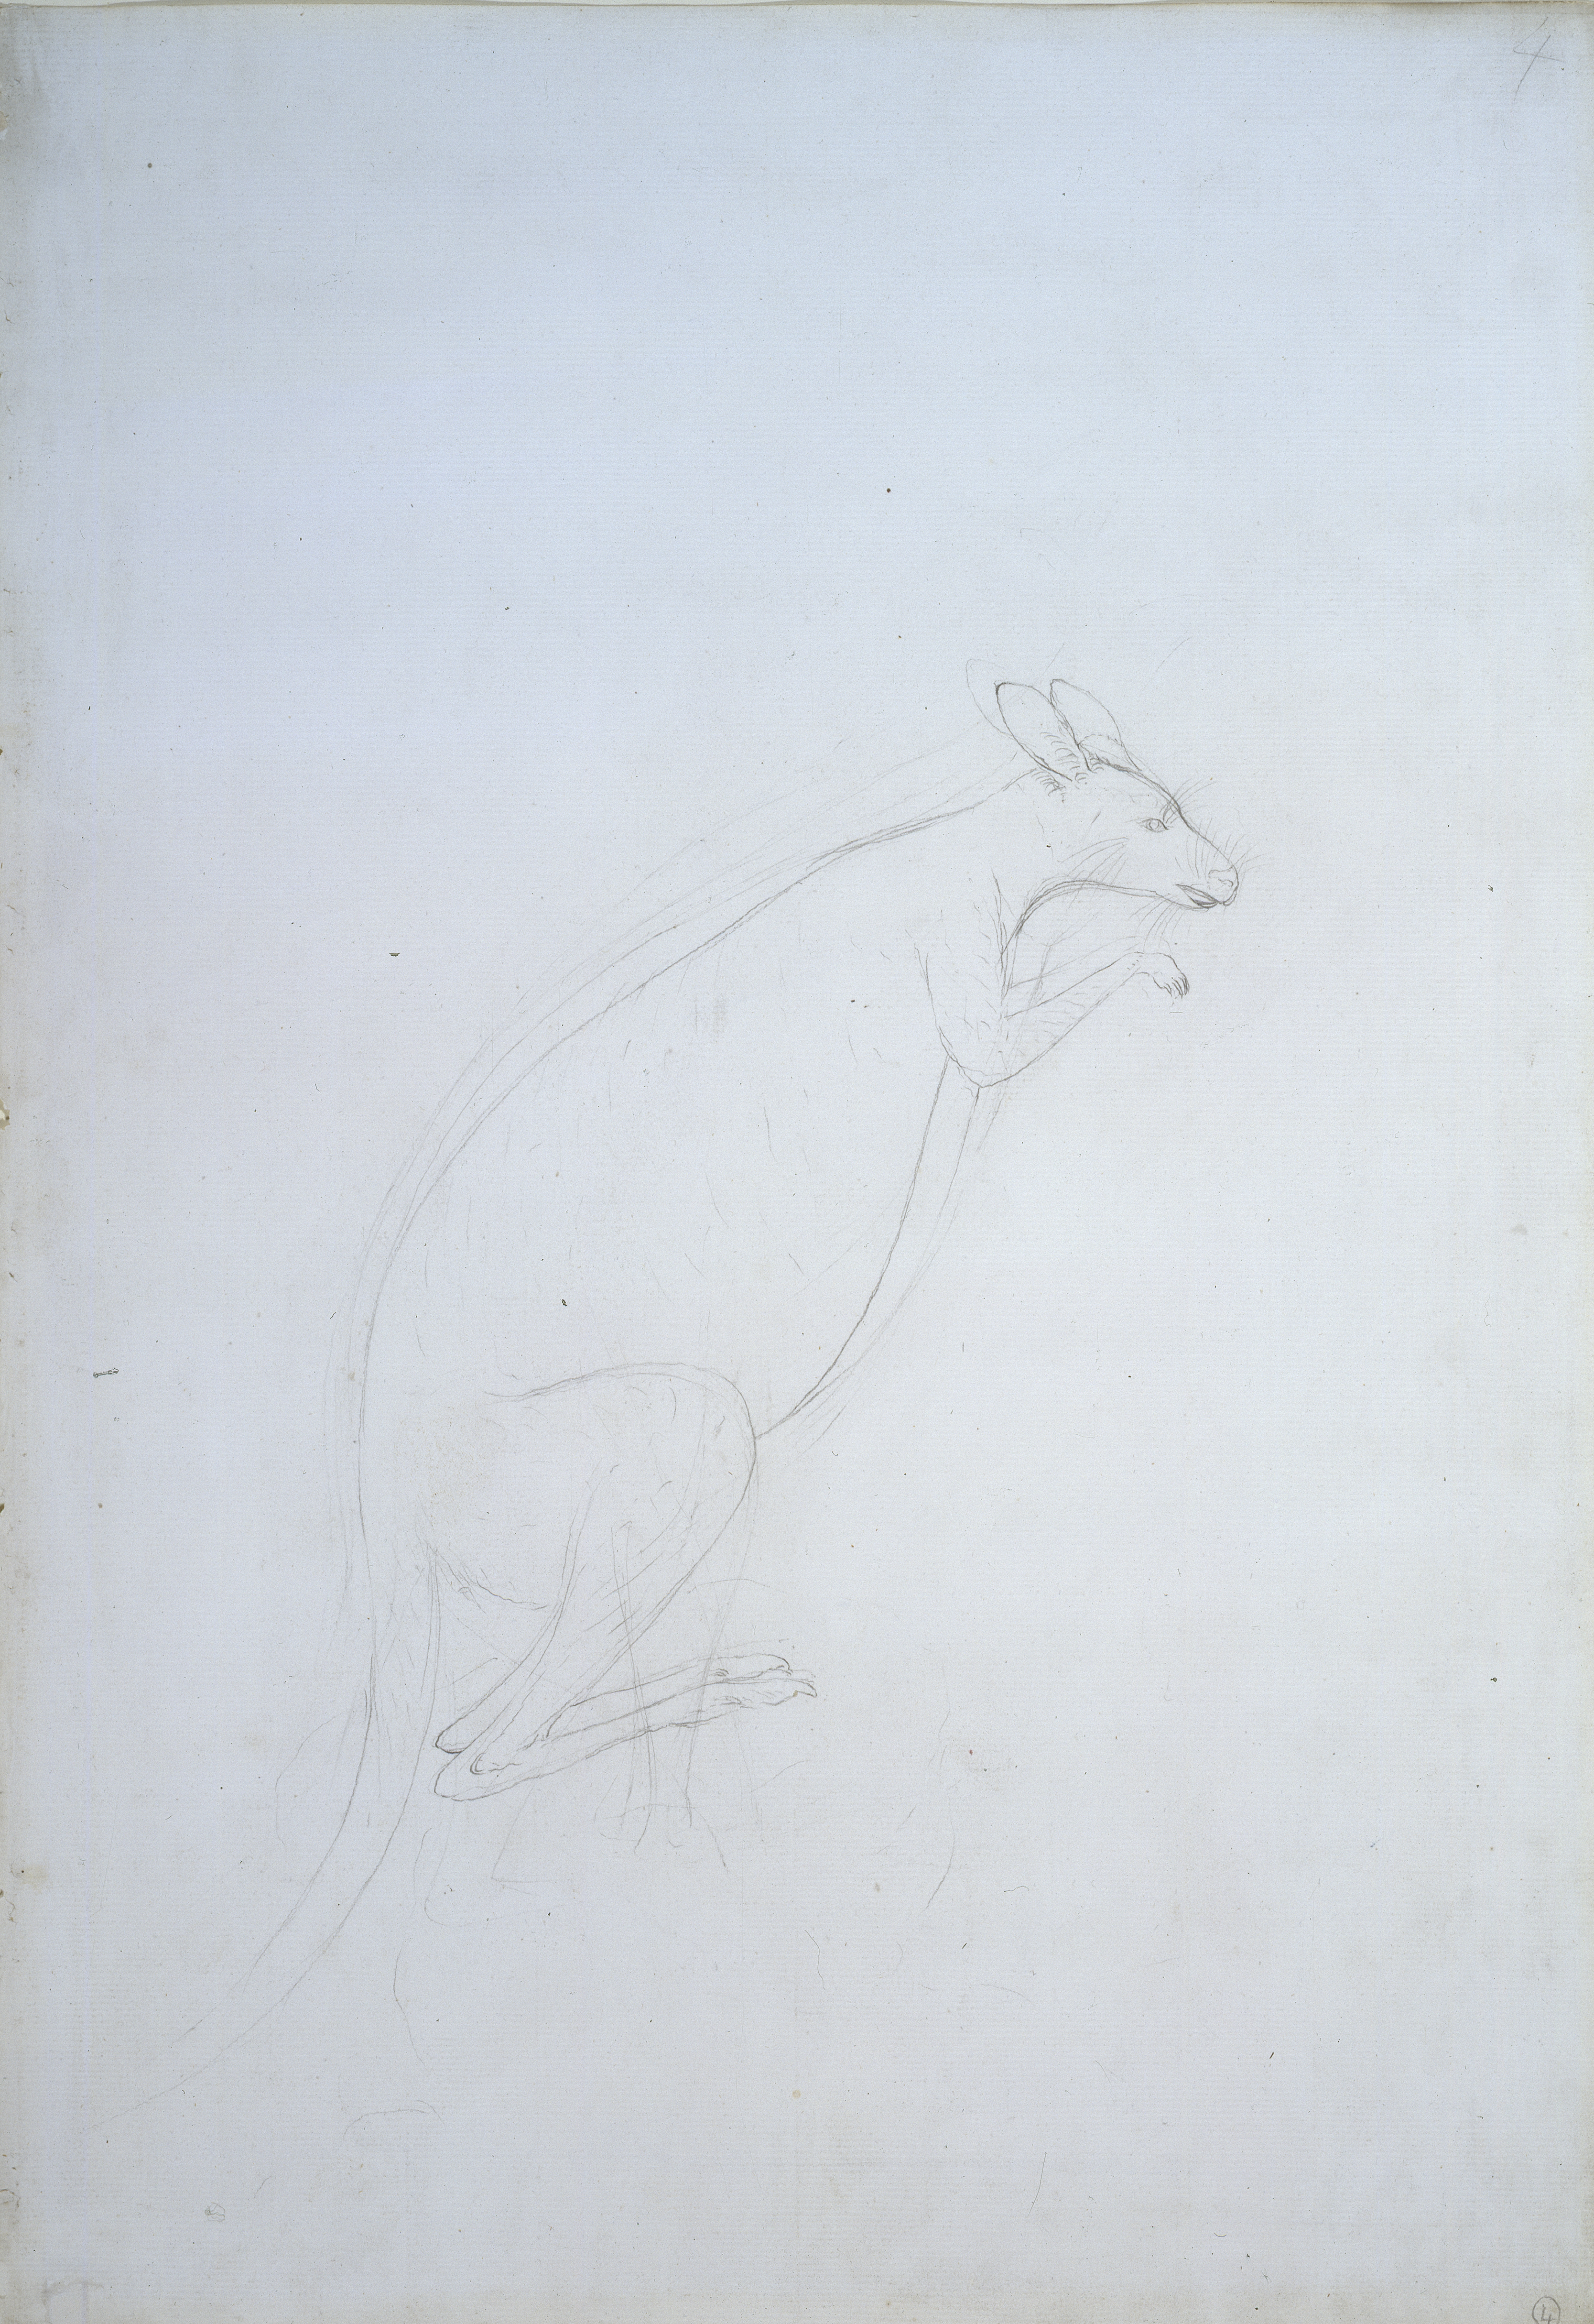 Kangaroo by Sydney Parkinson © Trustees of the Natural History Museum, London